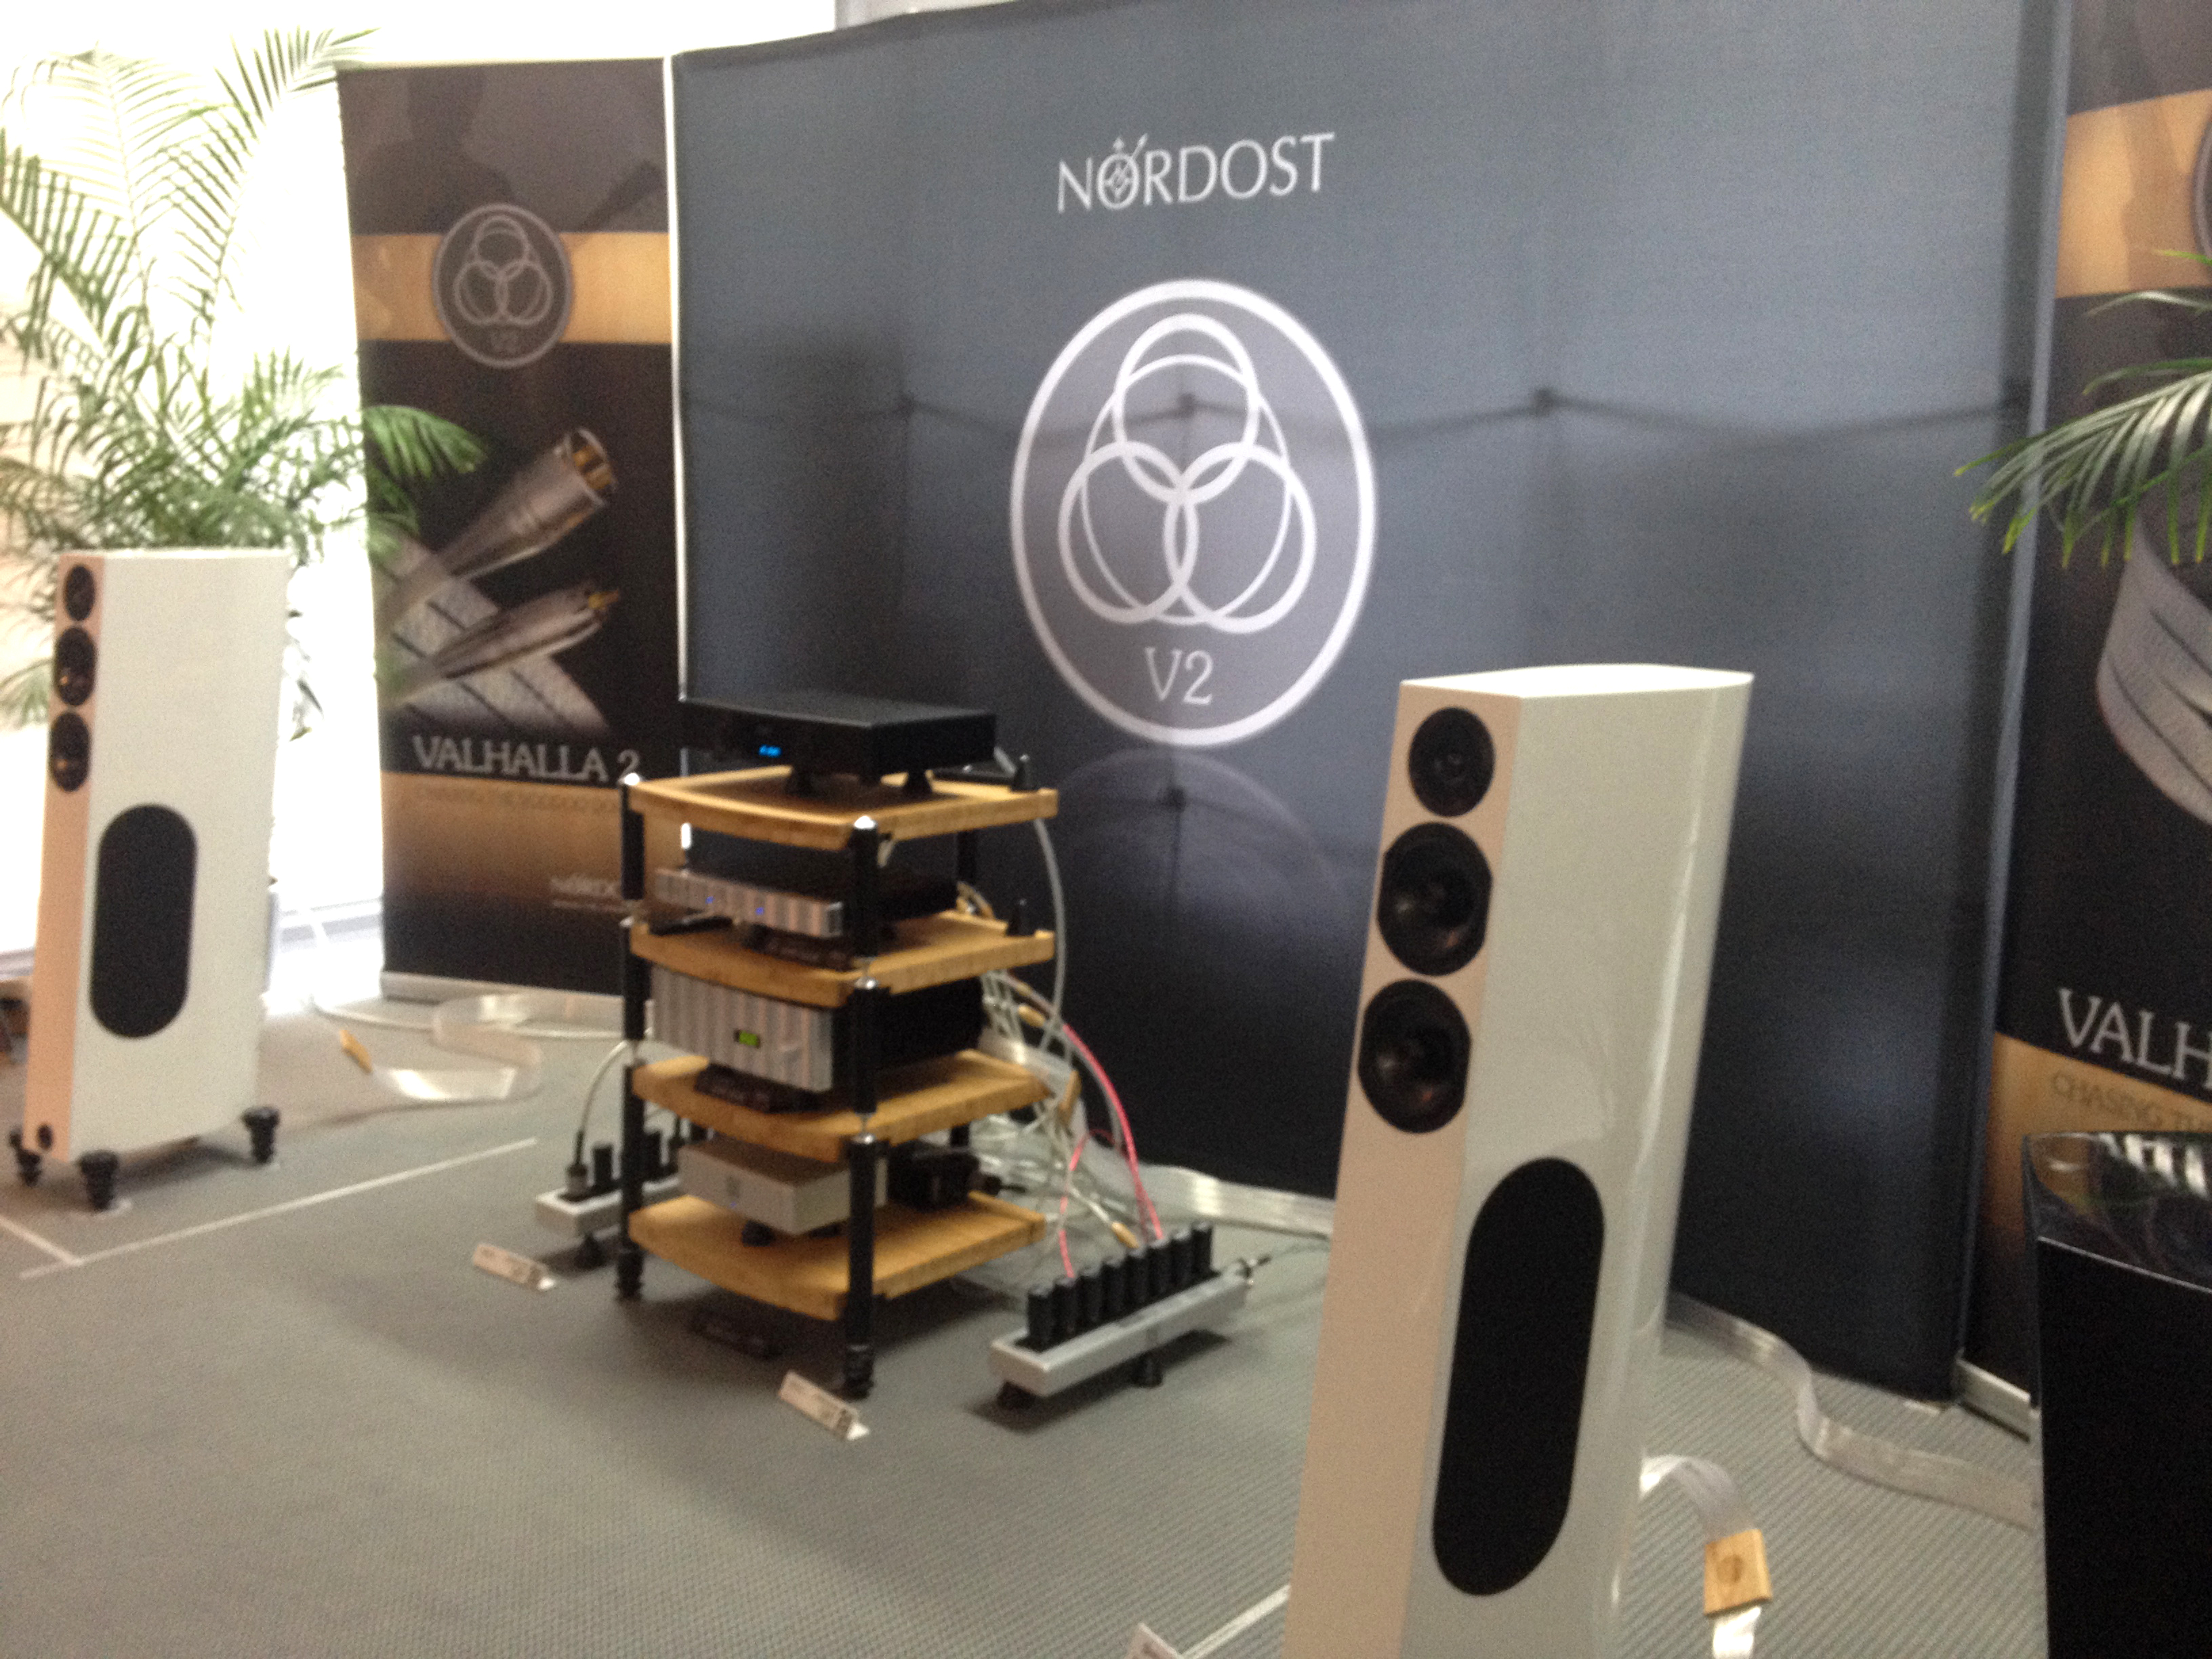 The Nordost system